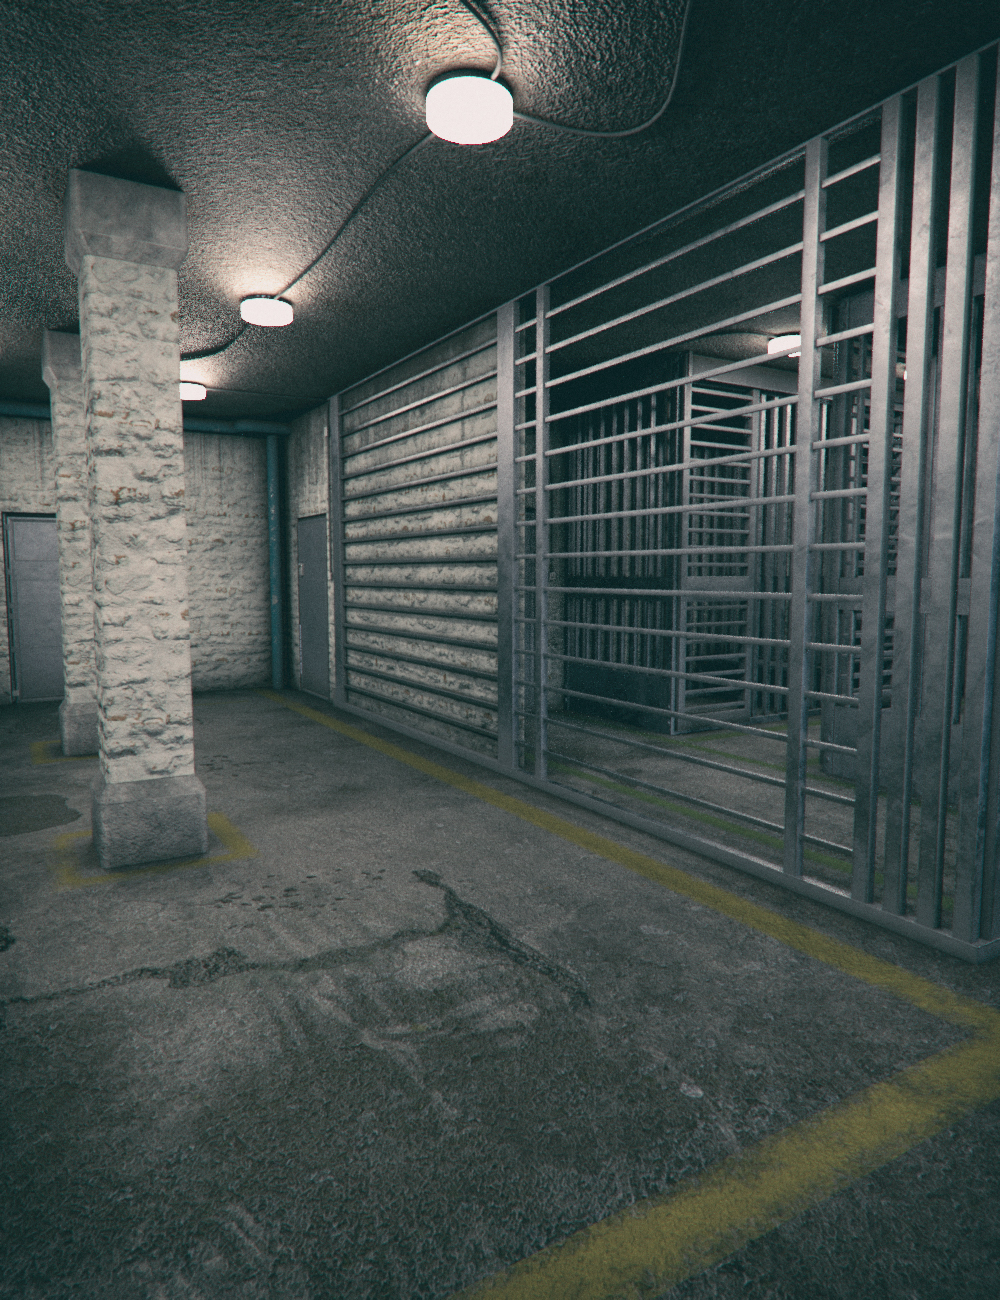 Old Prison Cells by: Mely3D, 3D Models by Daz 3D